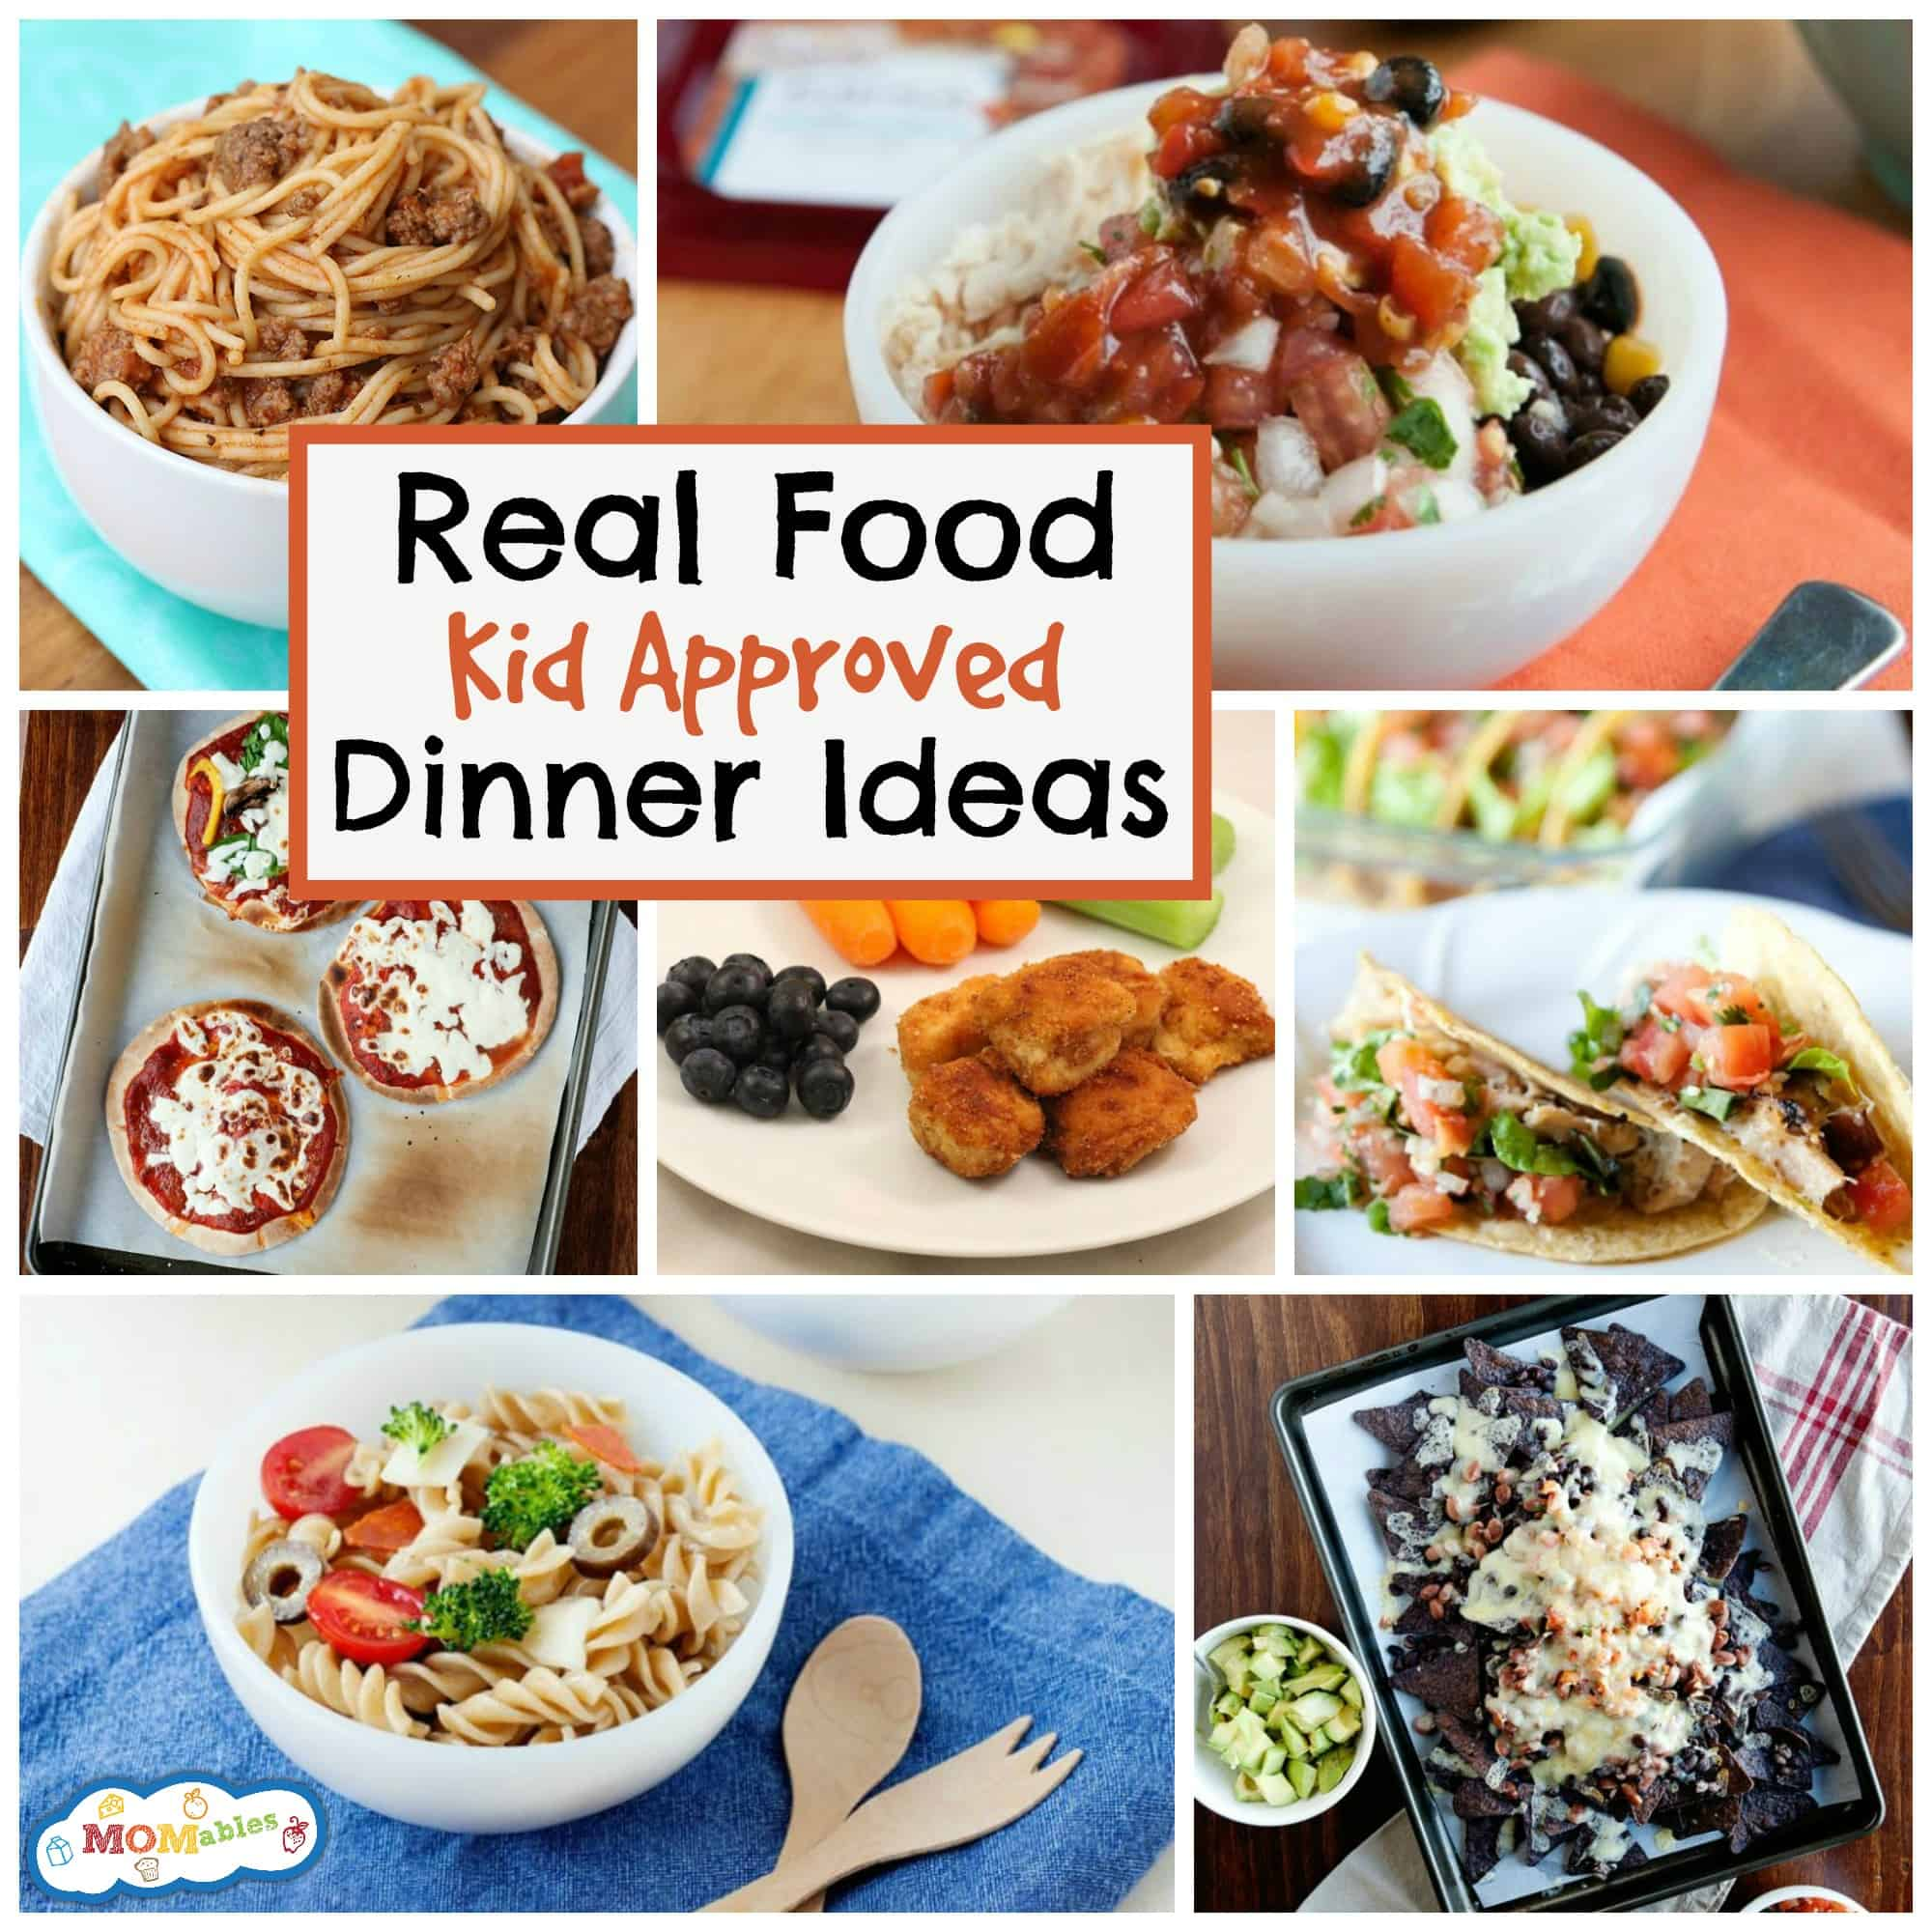 What Is Good To Cook For Dinner: 10 Real Food Kid Approved Dinner Ideas